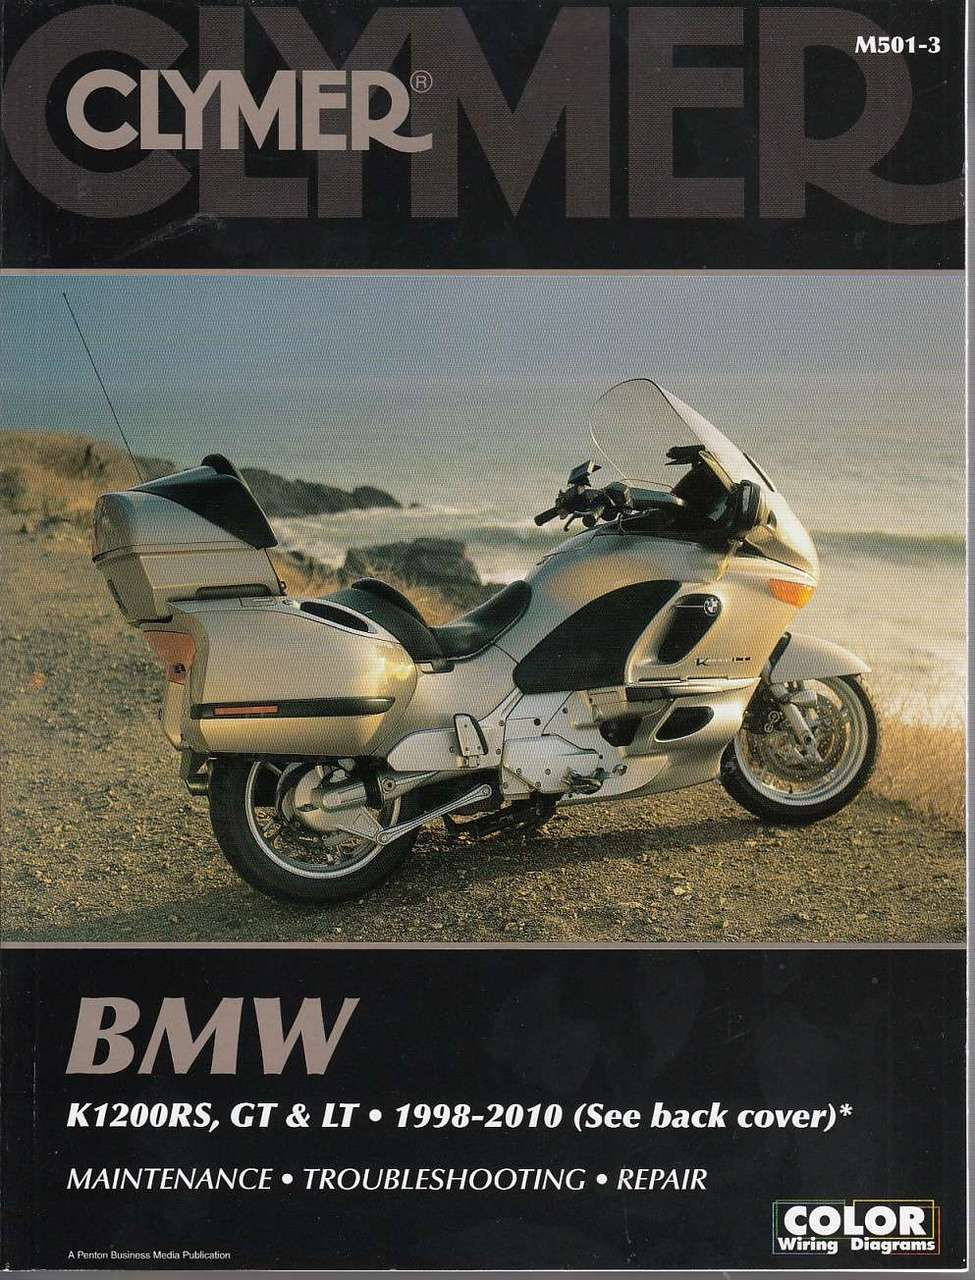 BMW K1200RS, K1200GT, K1200LT 1998 - 2010 Workshop Manual